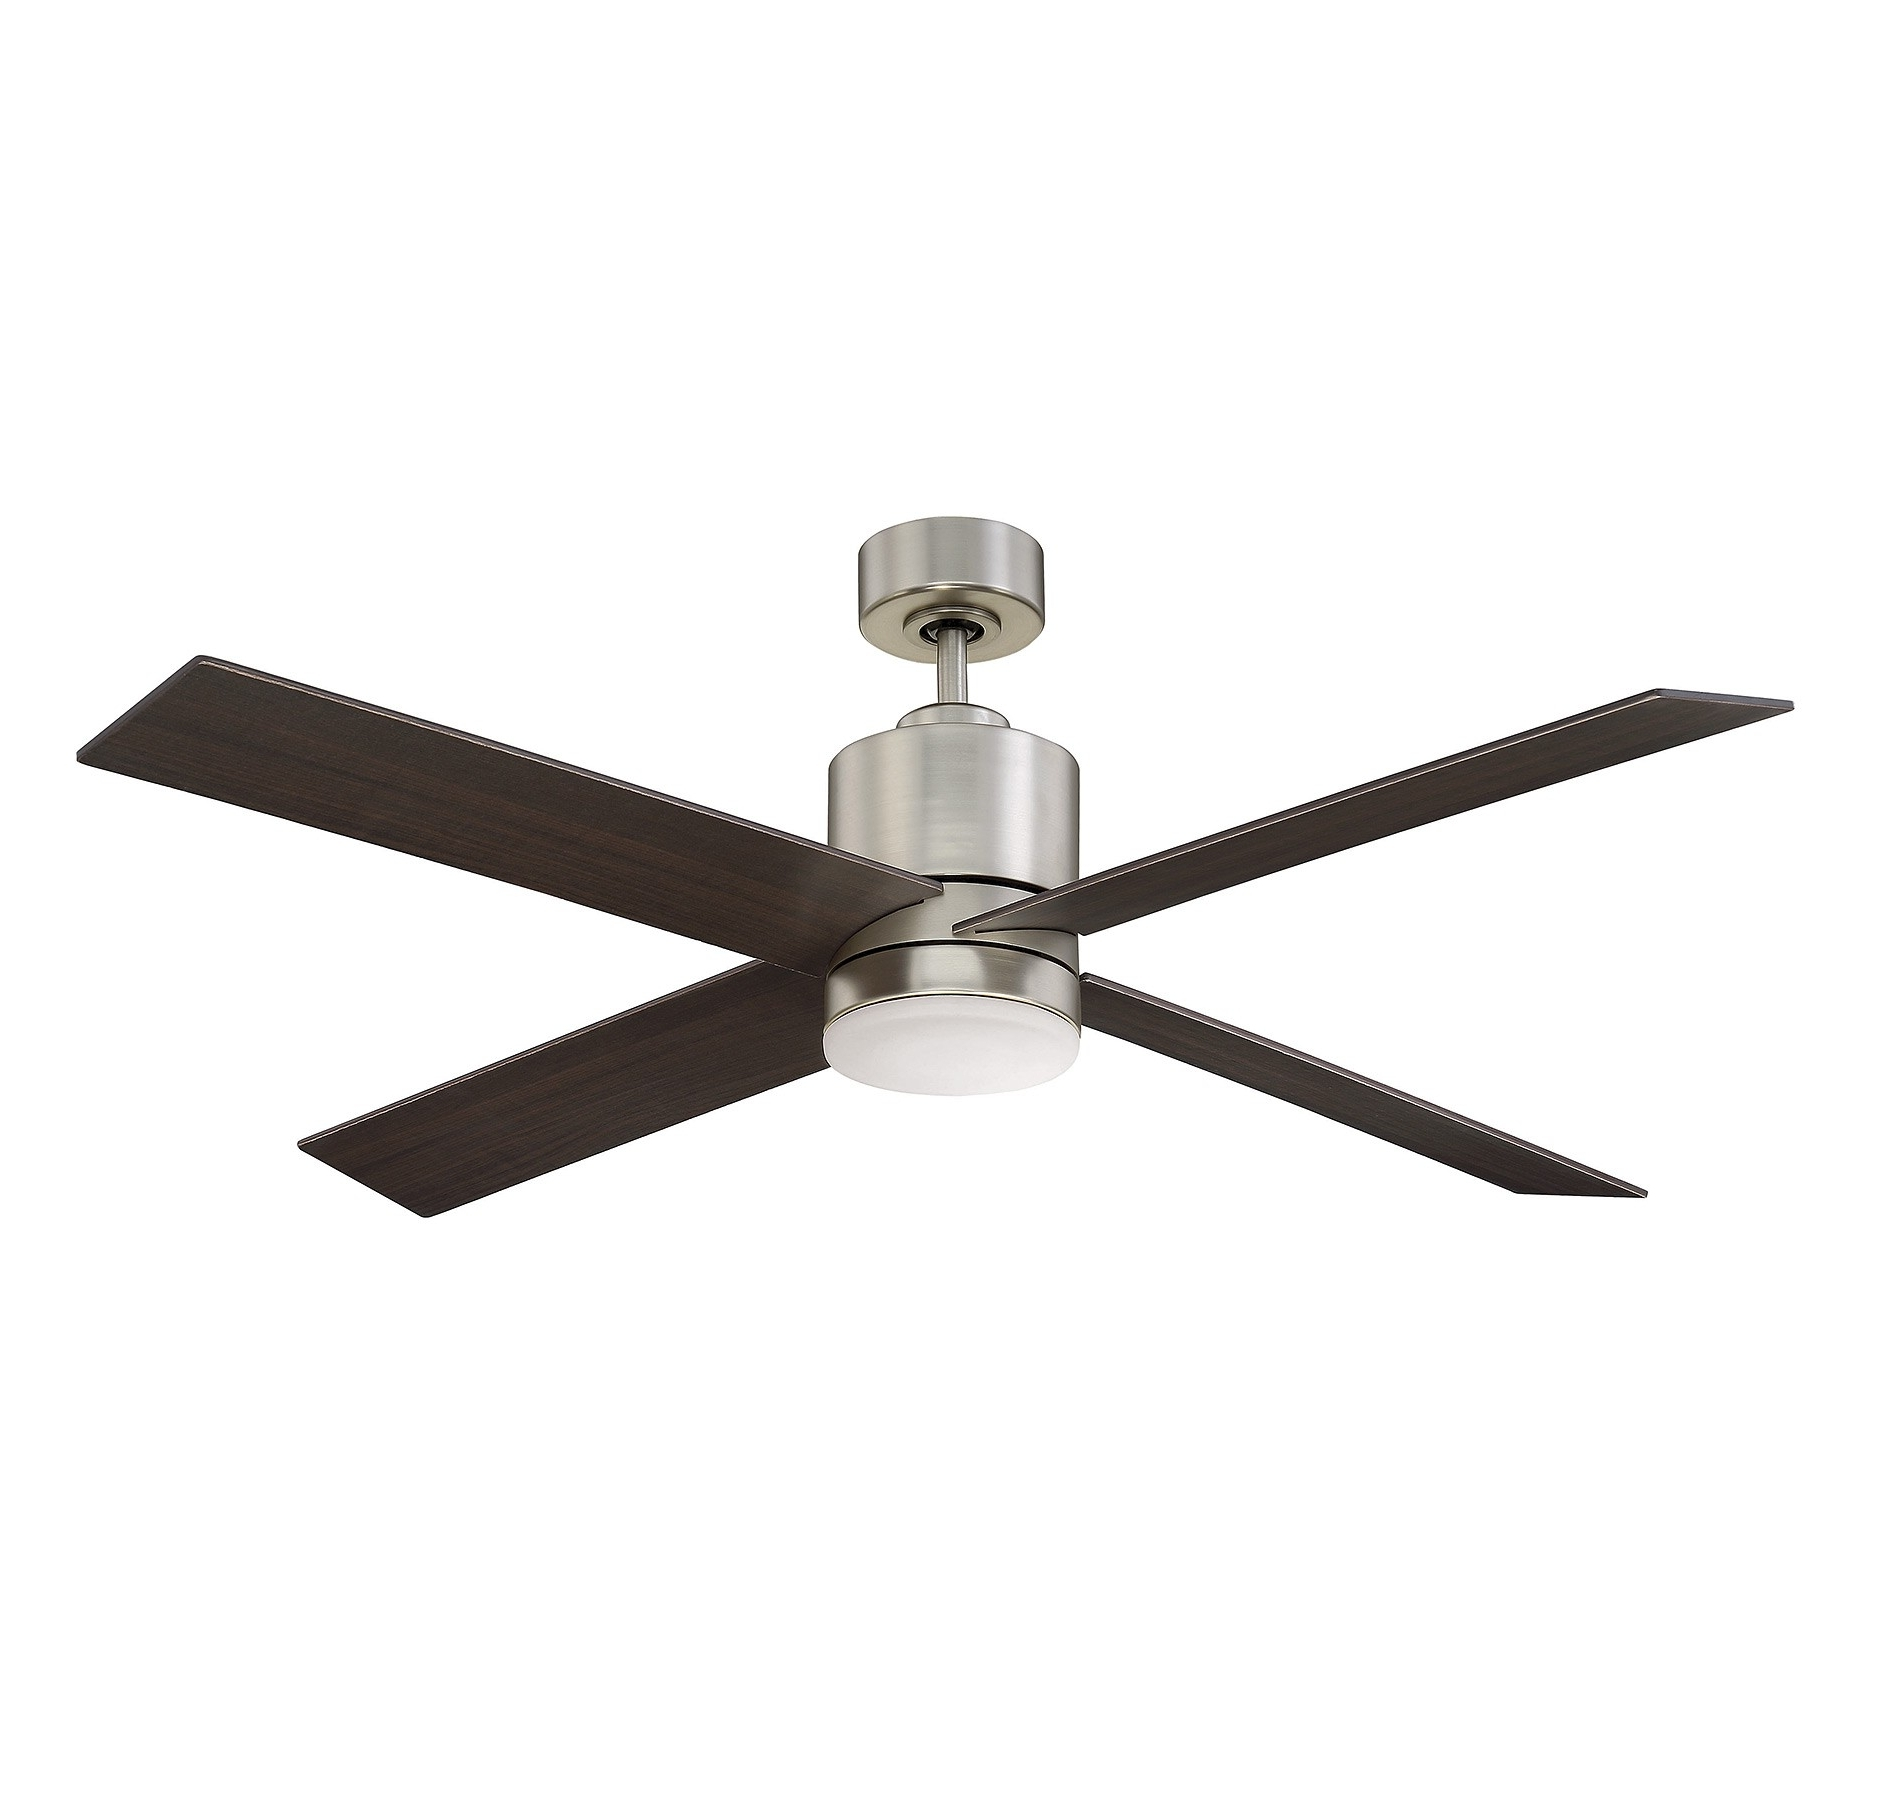 Recent 52 6110 4cn Sn Dayton 52 Inch 4 Blade Ceiling Fansavoy House Pertaining To Outdoor Ceiling Fans With Metal Blades (View 11 of 20)